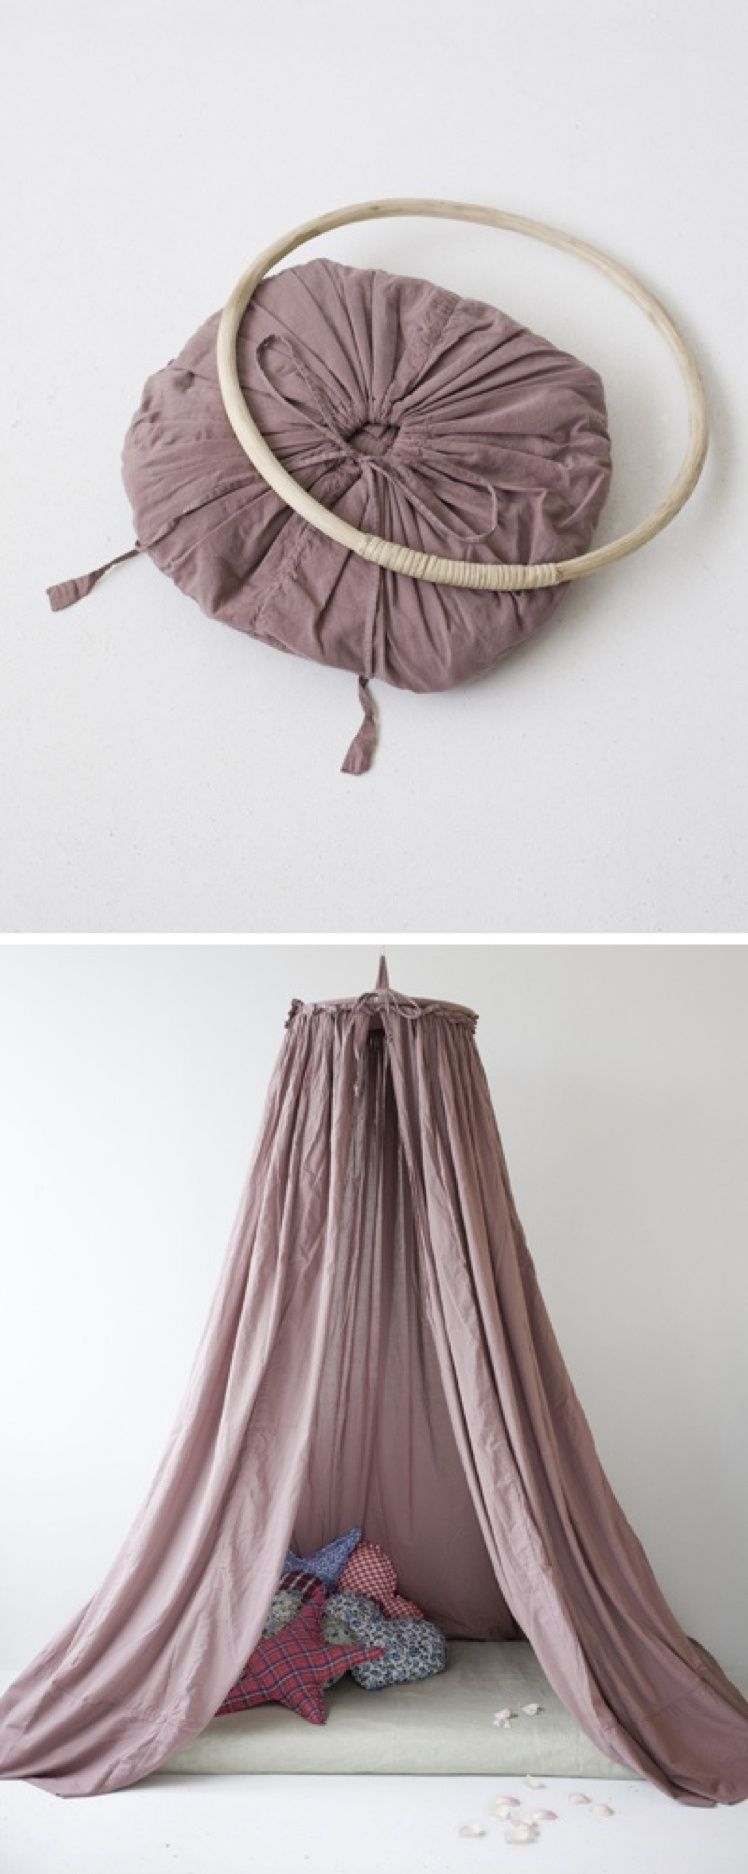 Kids playroom canopy - Diy Hideout Circular Canopy Hang Above Crib Bed Or Just A Nice Spot With Pillows On The Floor May Do This In Playroom Kids Love Forts Always Have